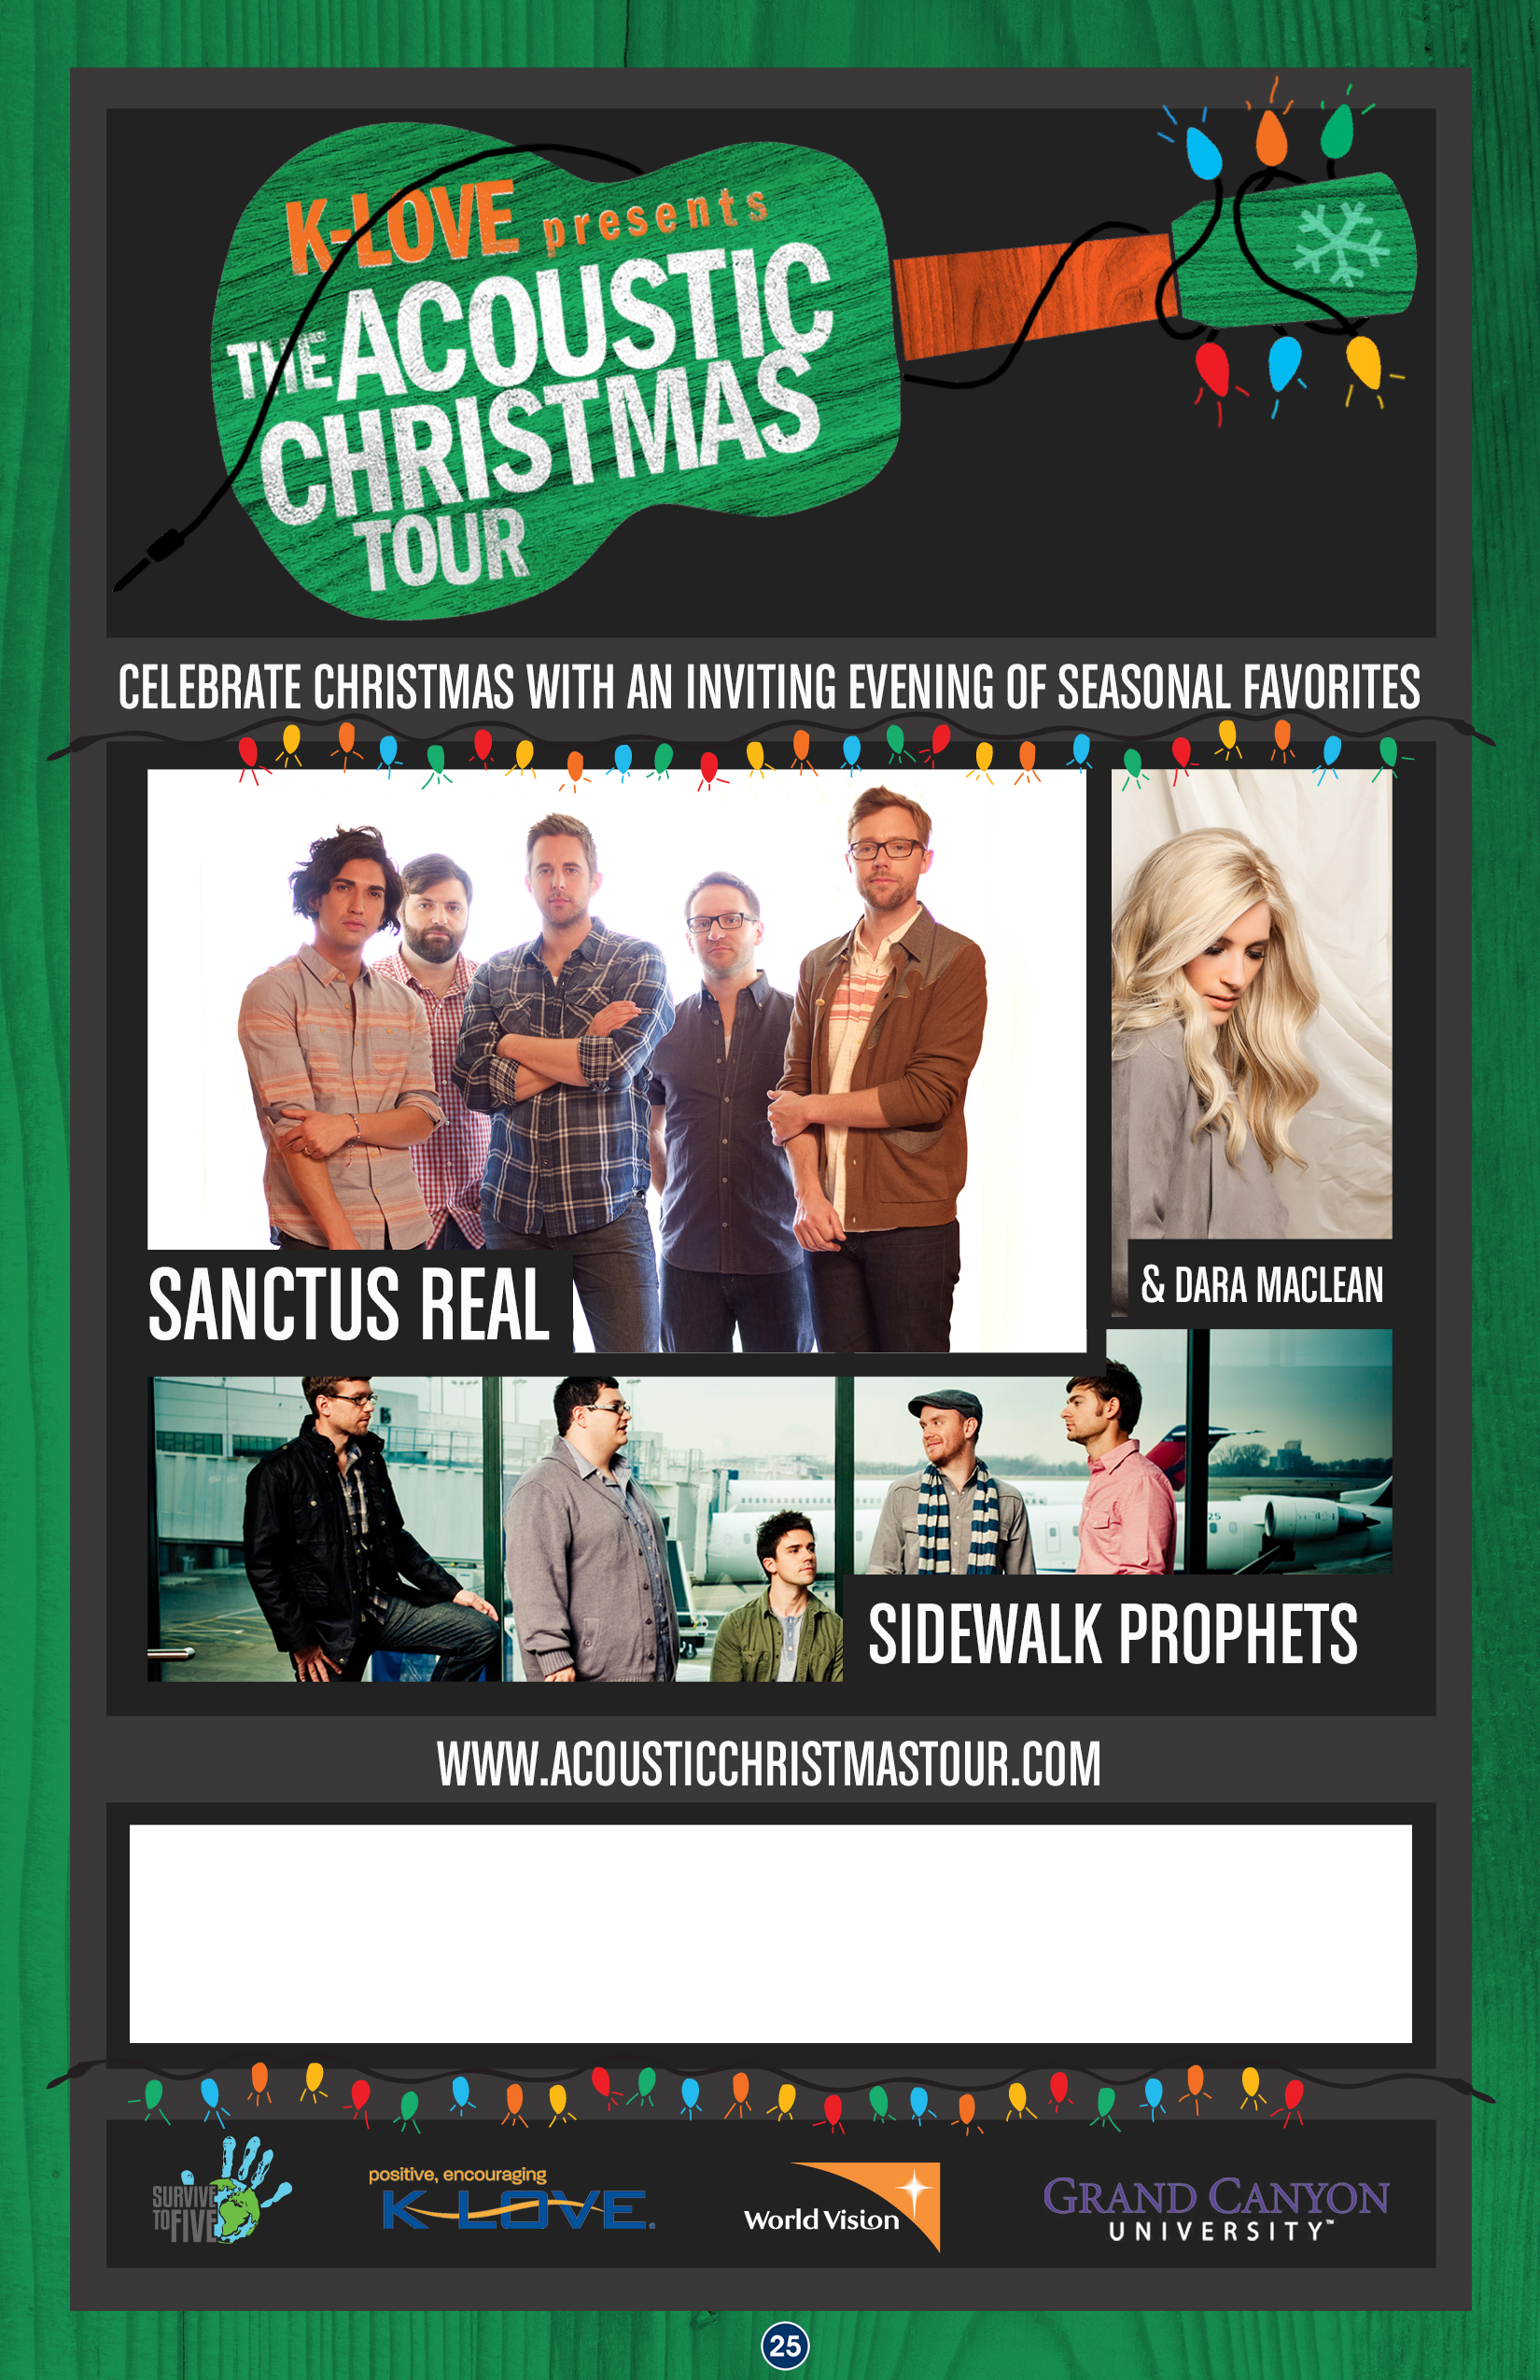 K-Love presents-The Acoustic Christmas Tour - Christian Concert Alerts